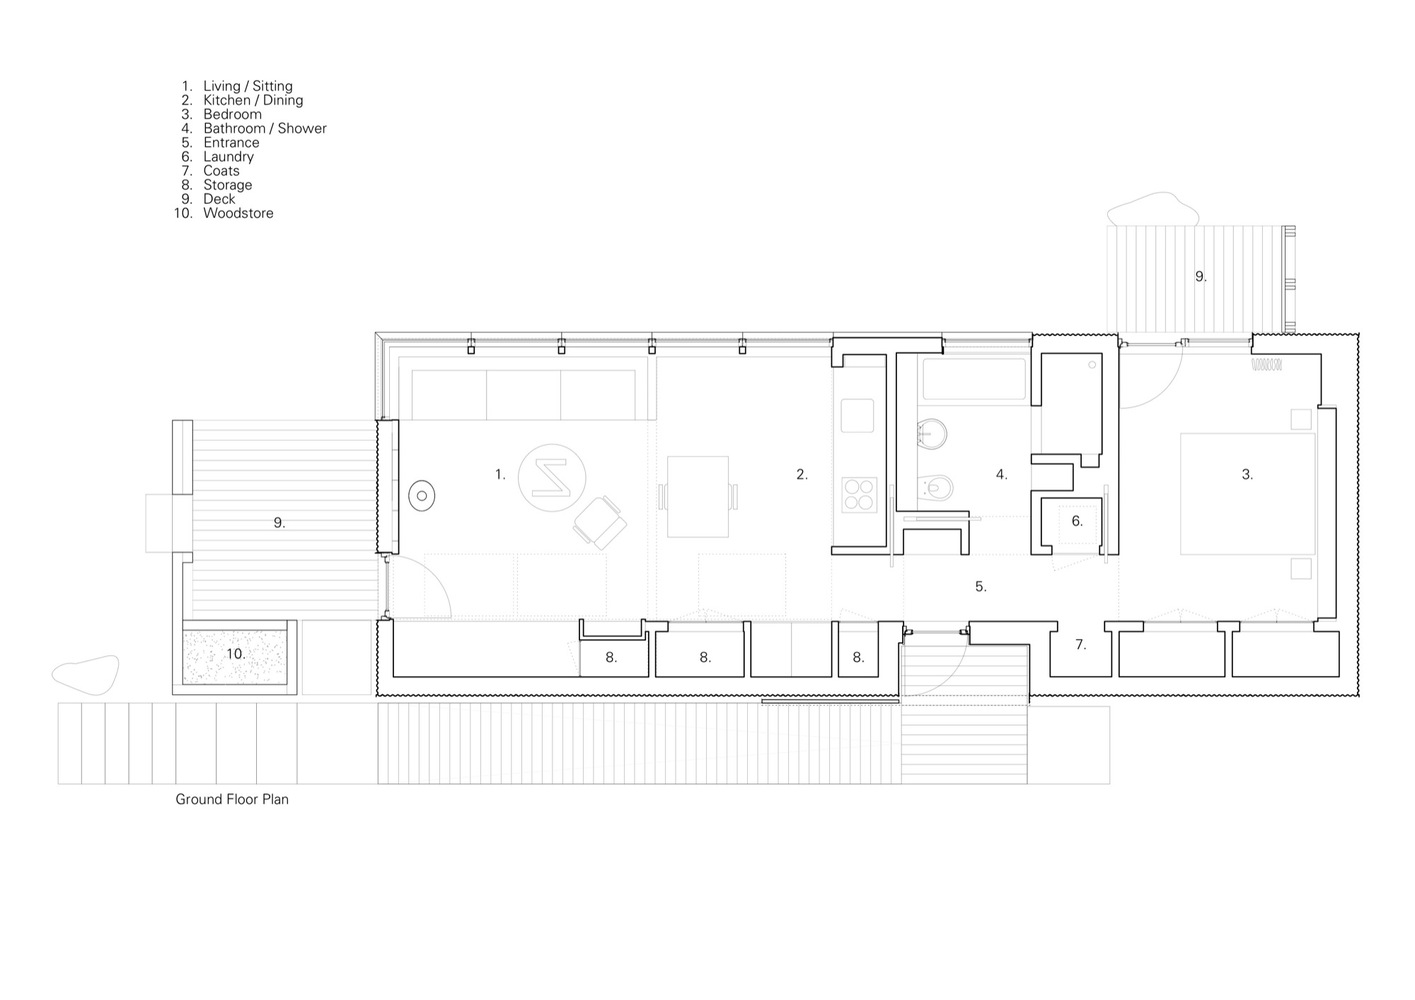 Small House Plans Under 1000 sq ft Reveal Their Secrets